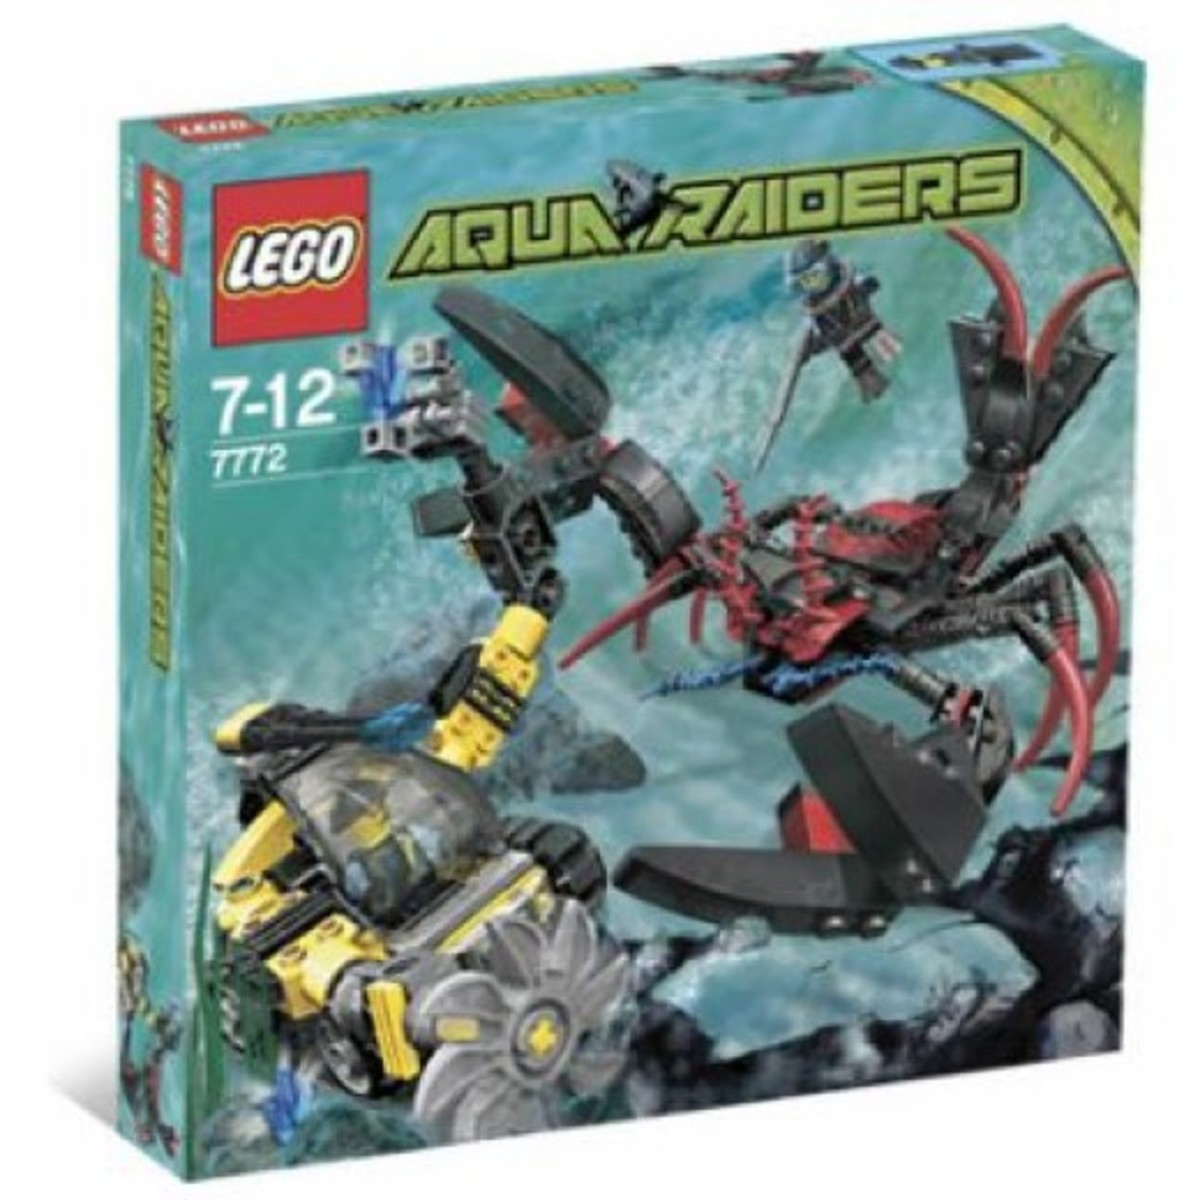 LEGO Aqua Raiders Lobster Strike 7772 Box